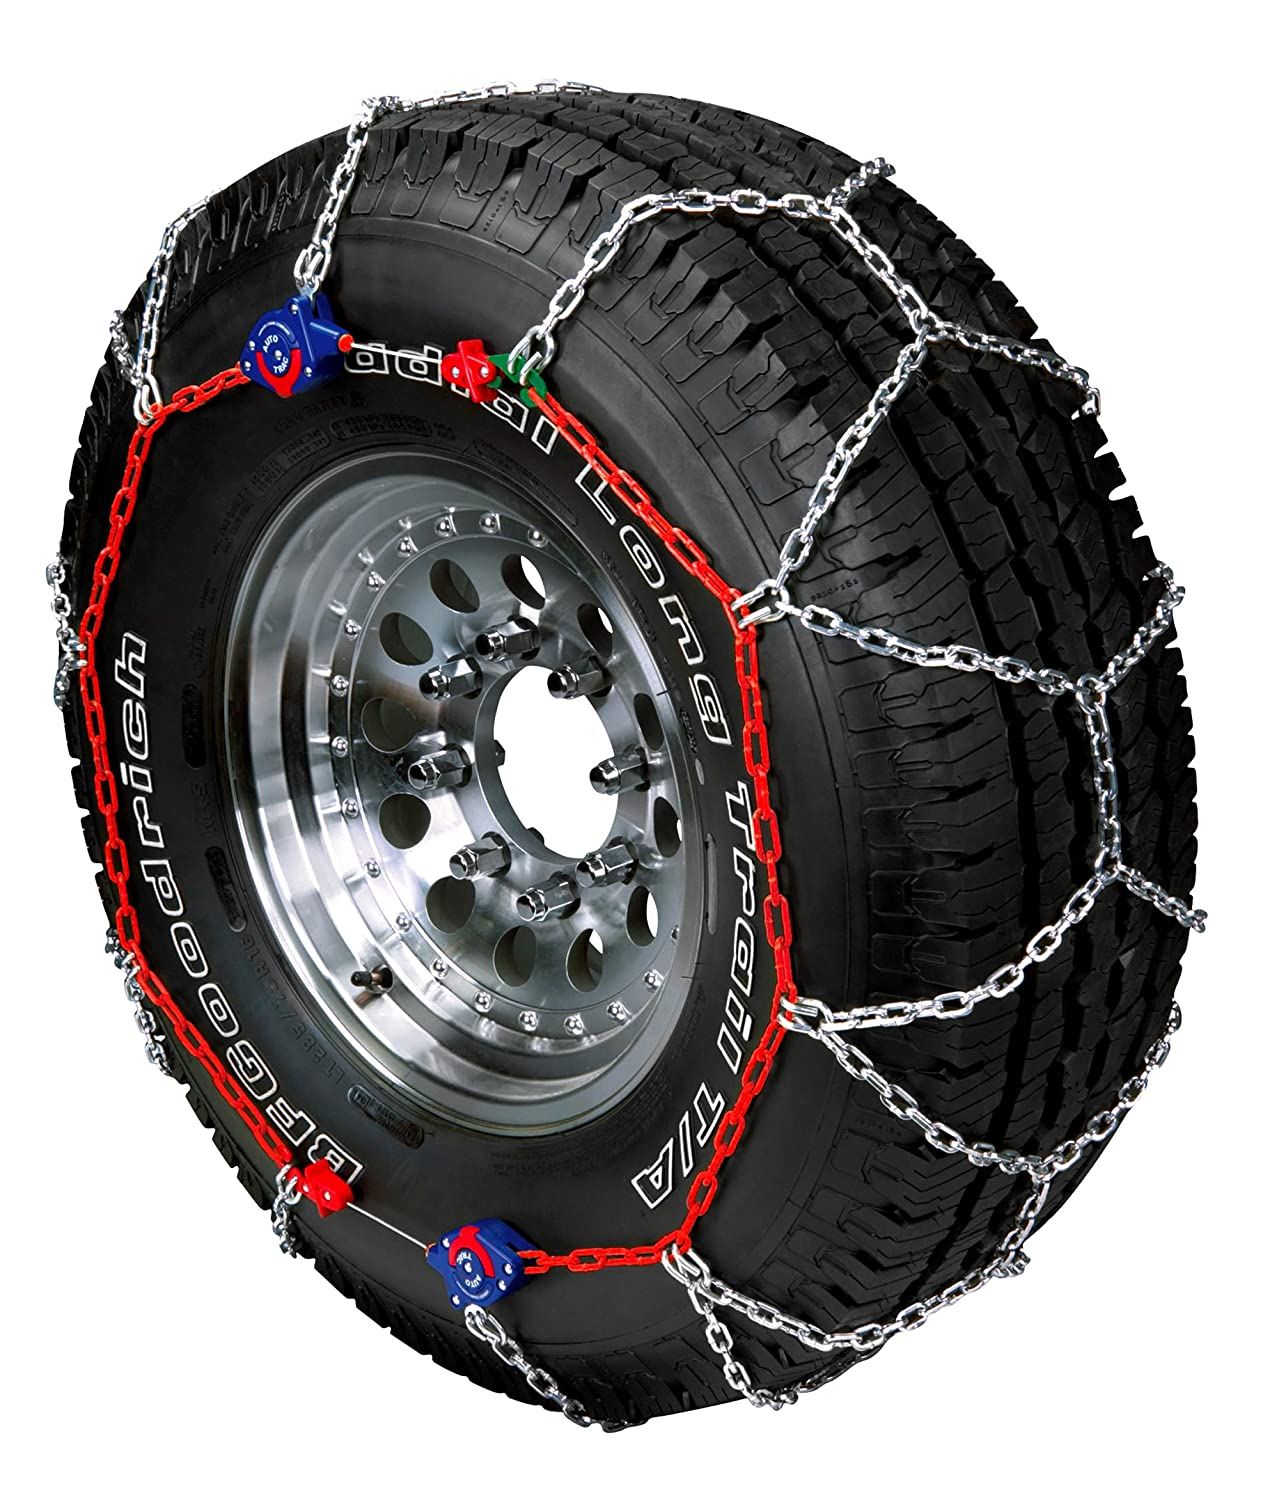 Security Chain Company 0231805 Auto-Trac Light Truck/SUV Tire Chains